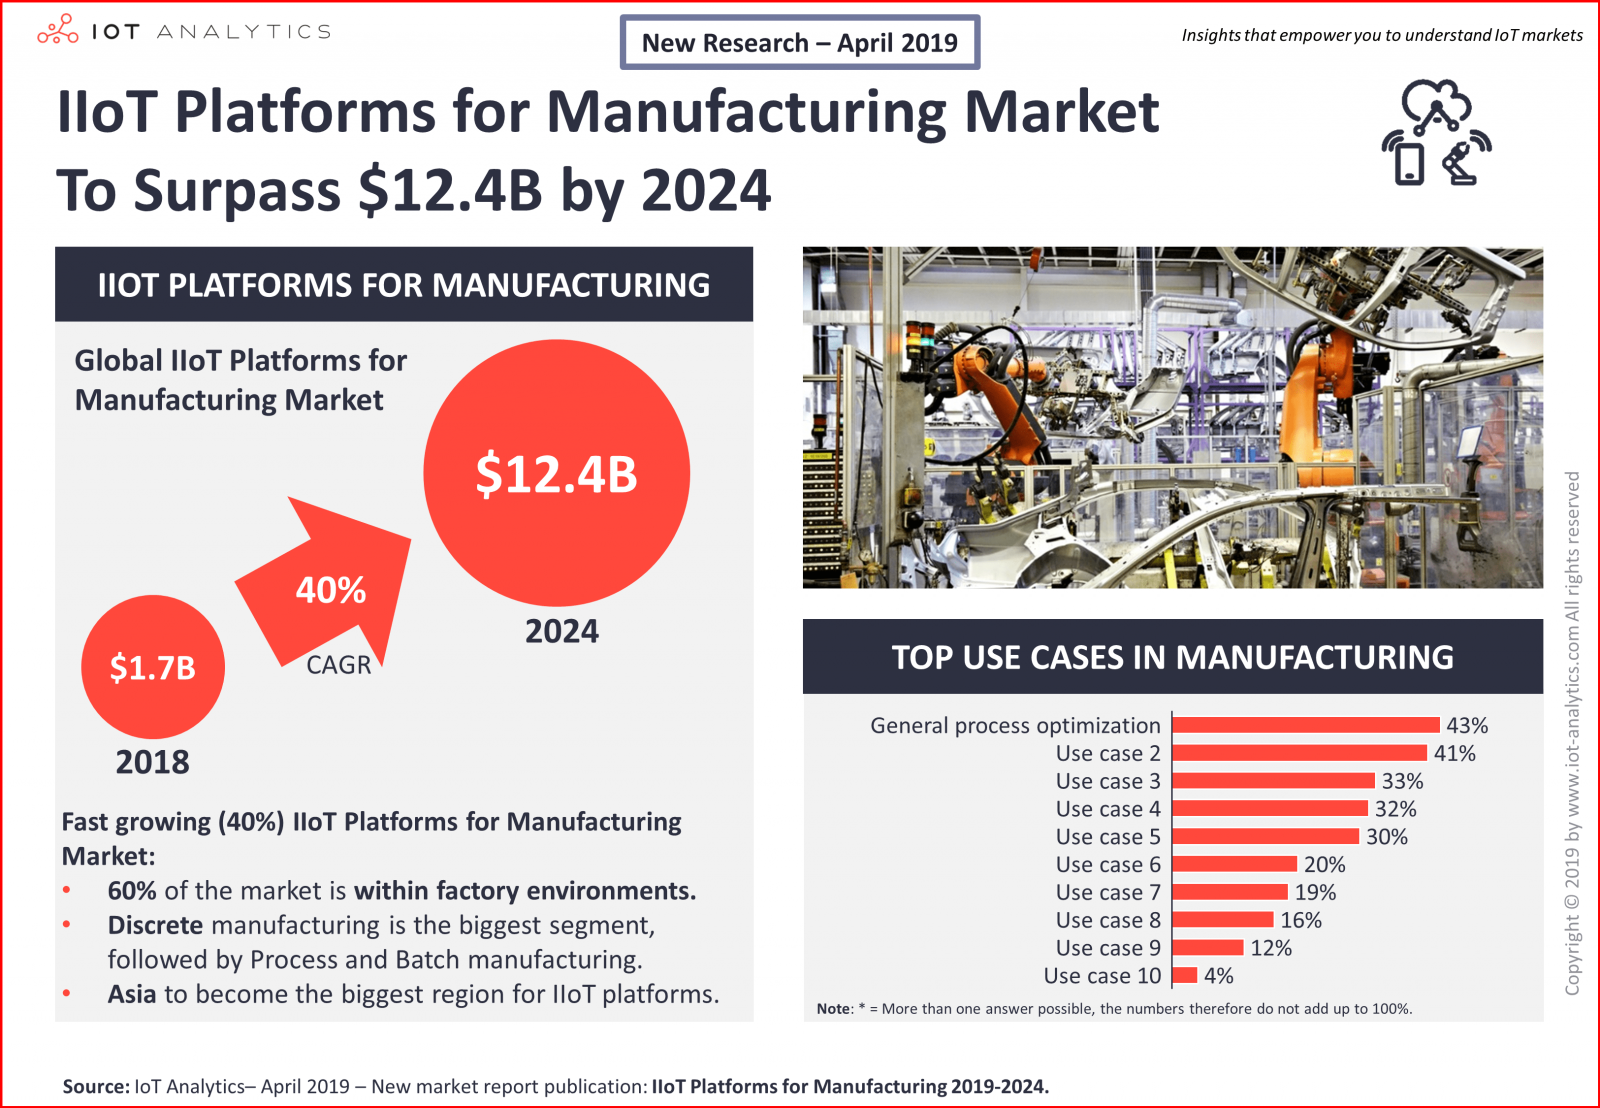 IIoT Platforms for Manufacturing Market to Surpass $12.4B by 2024 - Industrial IoT Platforms for Manufacturing 2019-2024. (IoT Analytics GmbH)